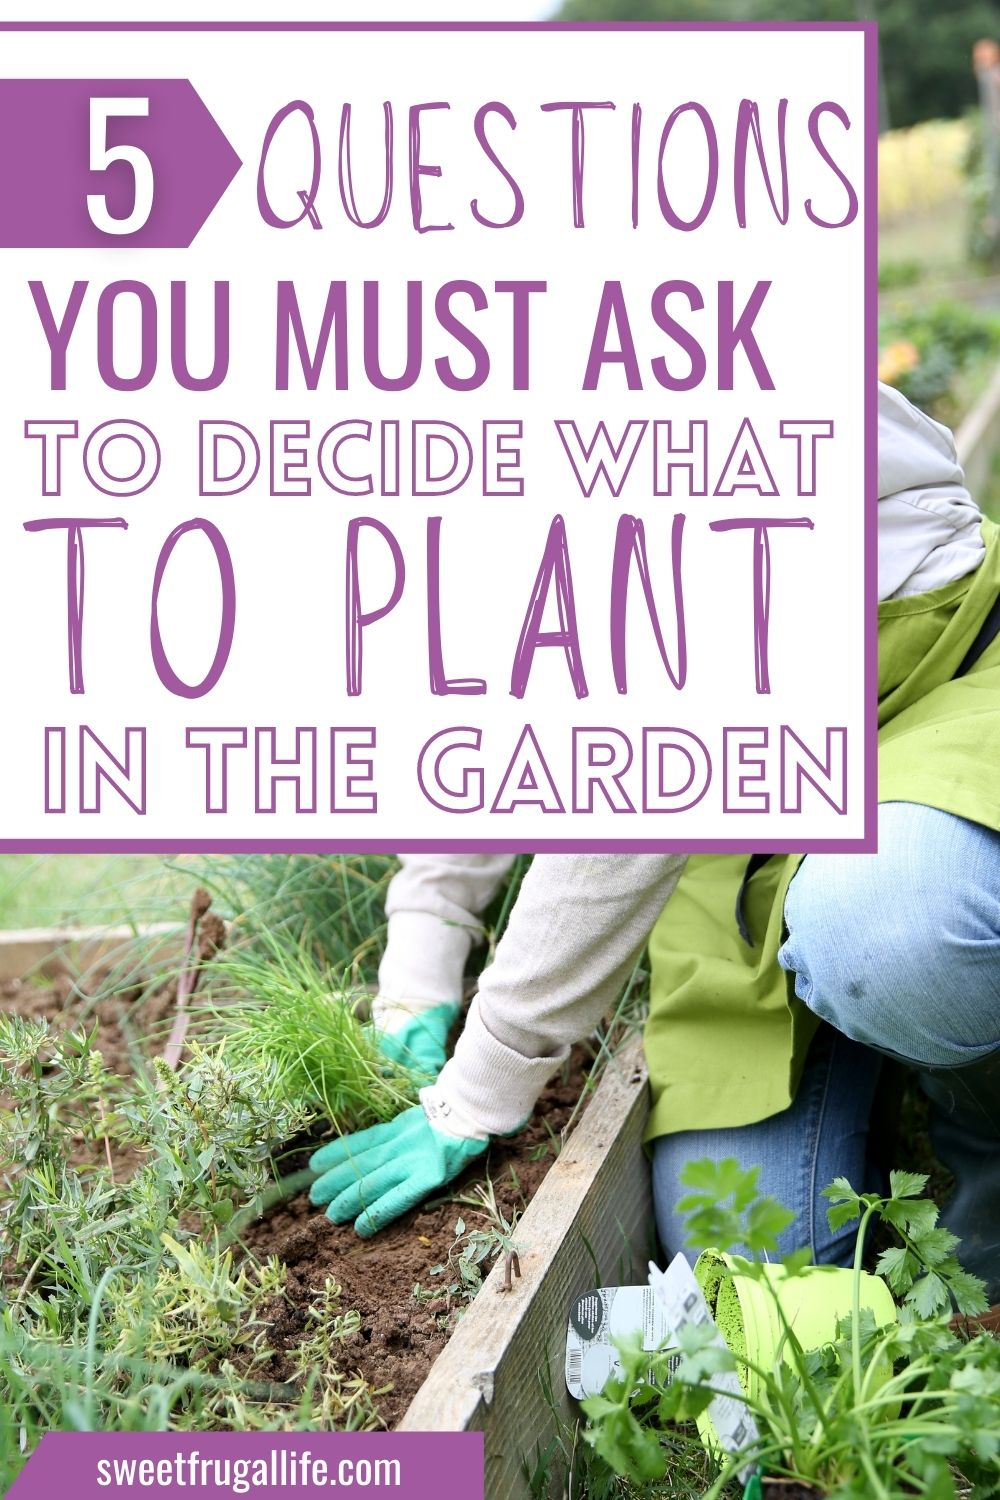 what to plant in the garden - gardening tips for beginners